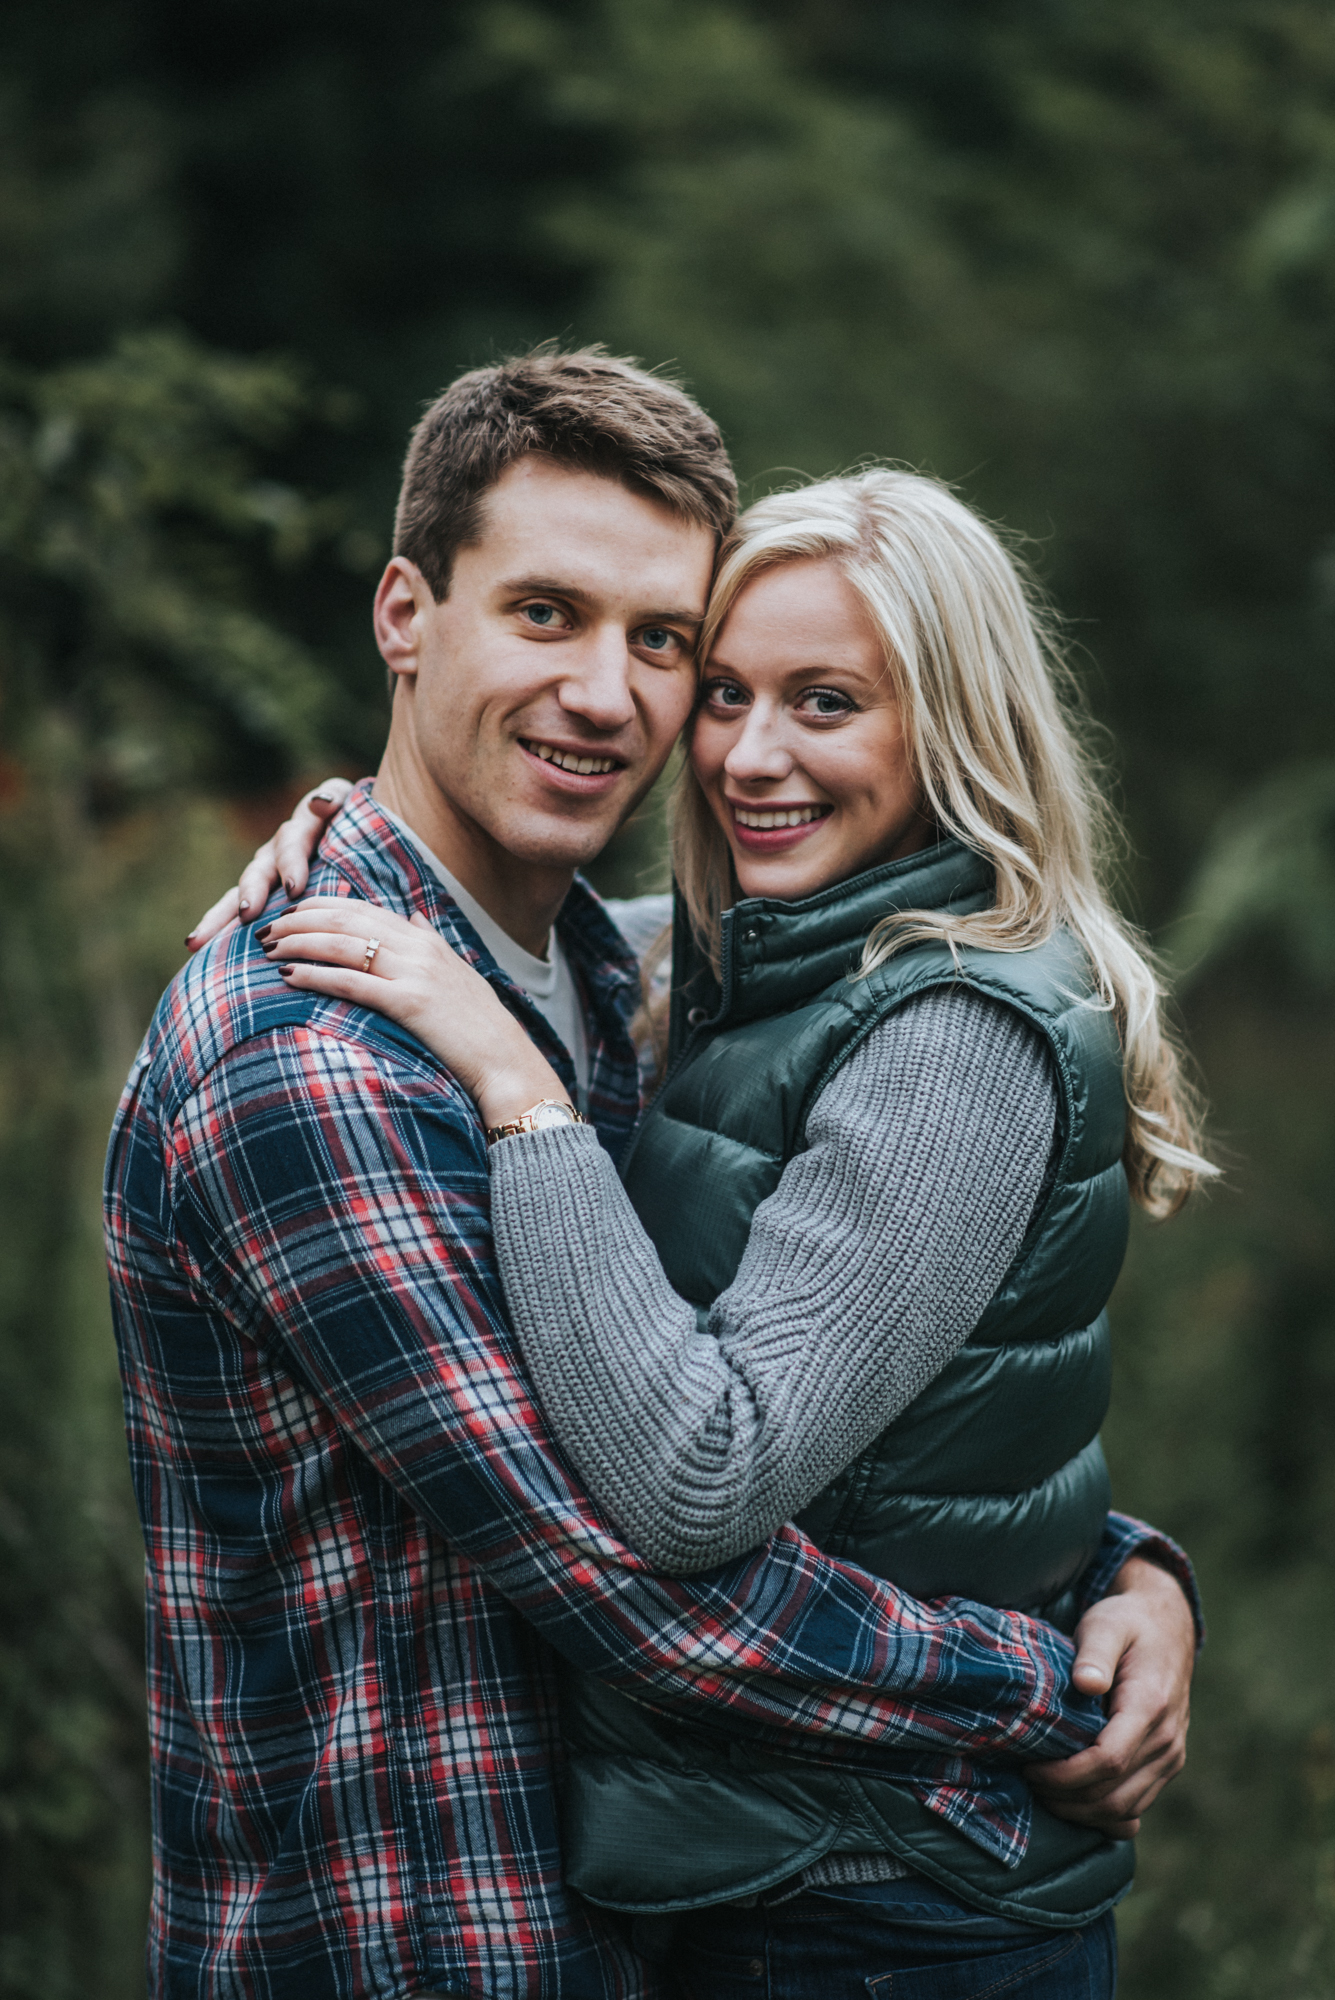 Harpersfield bridge engagement session - katie and nick